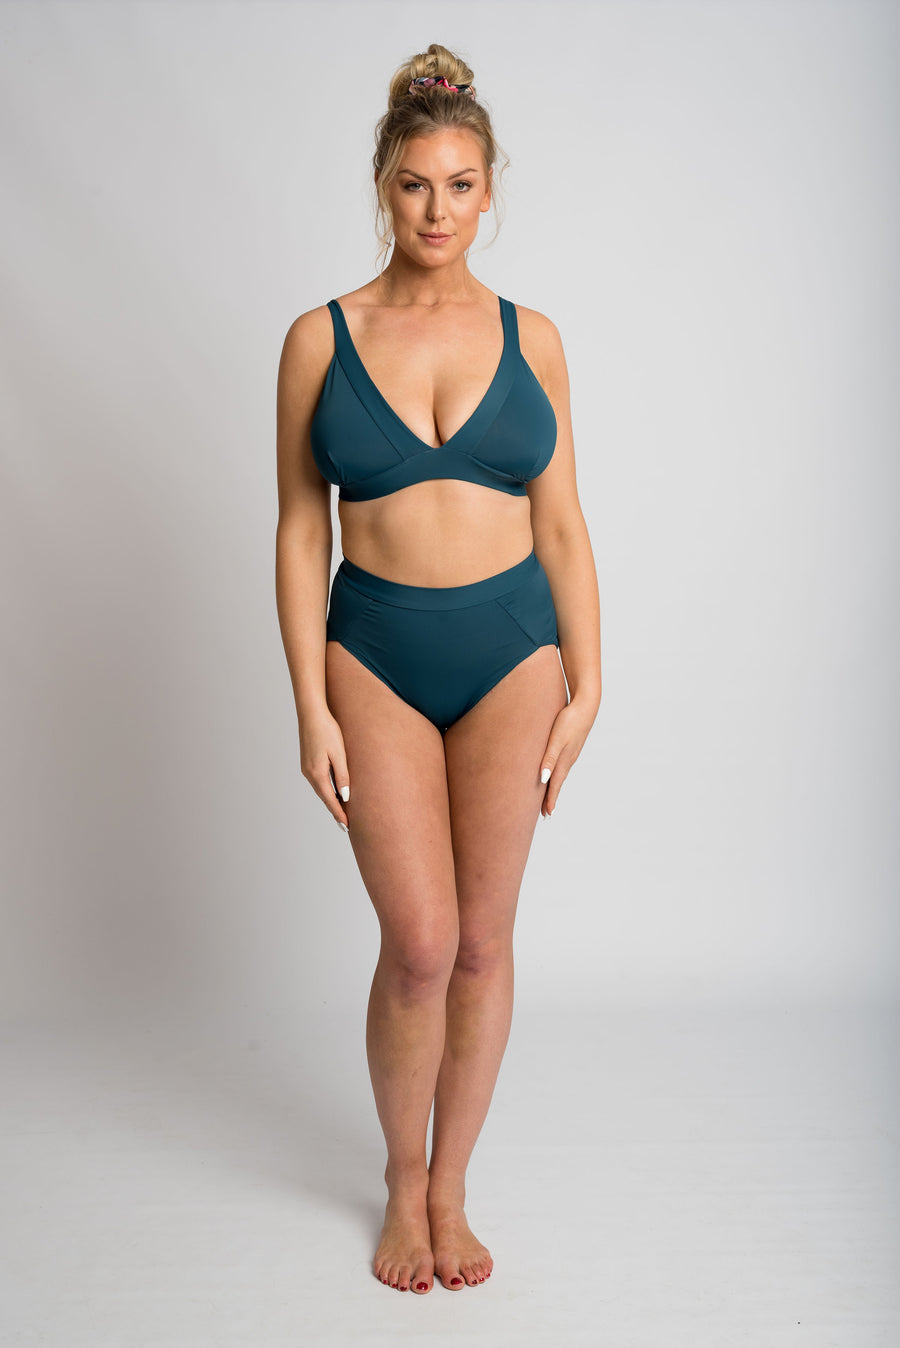 Ethical and sustainable swimwear for women xxs to plus size, recycled ECONYL high waist bikini bottom ethically made in Australia.